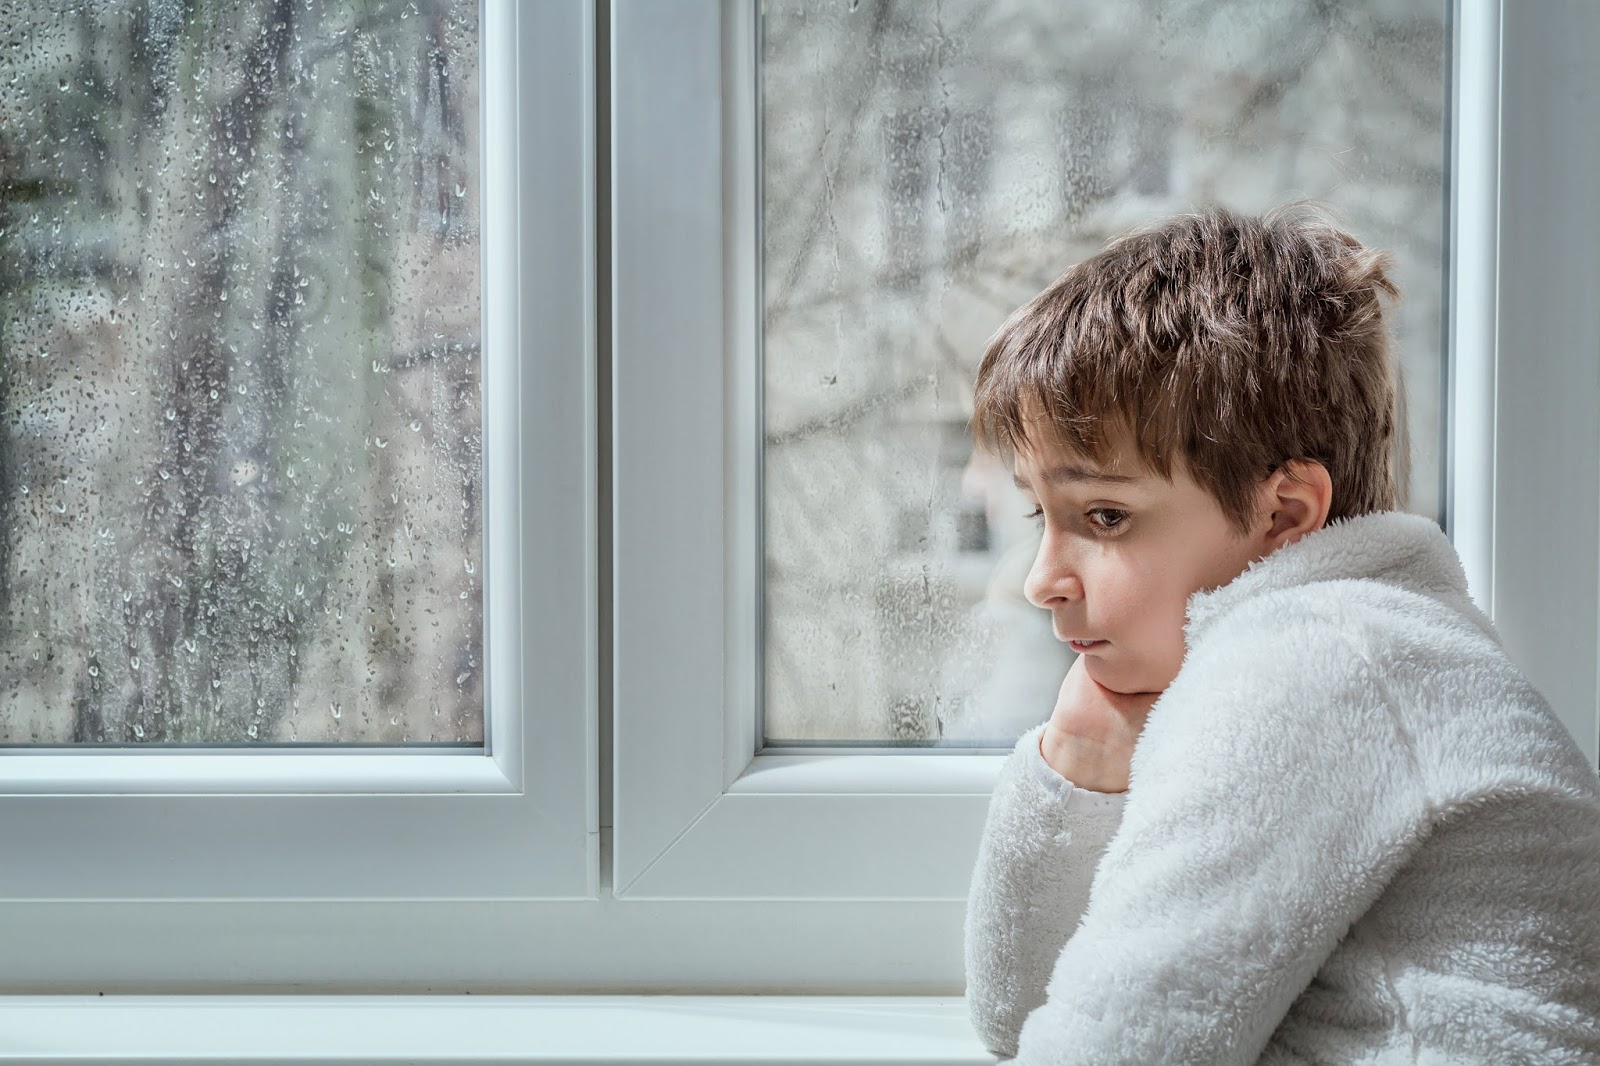 Photo of child next to a rainy window